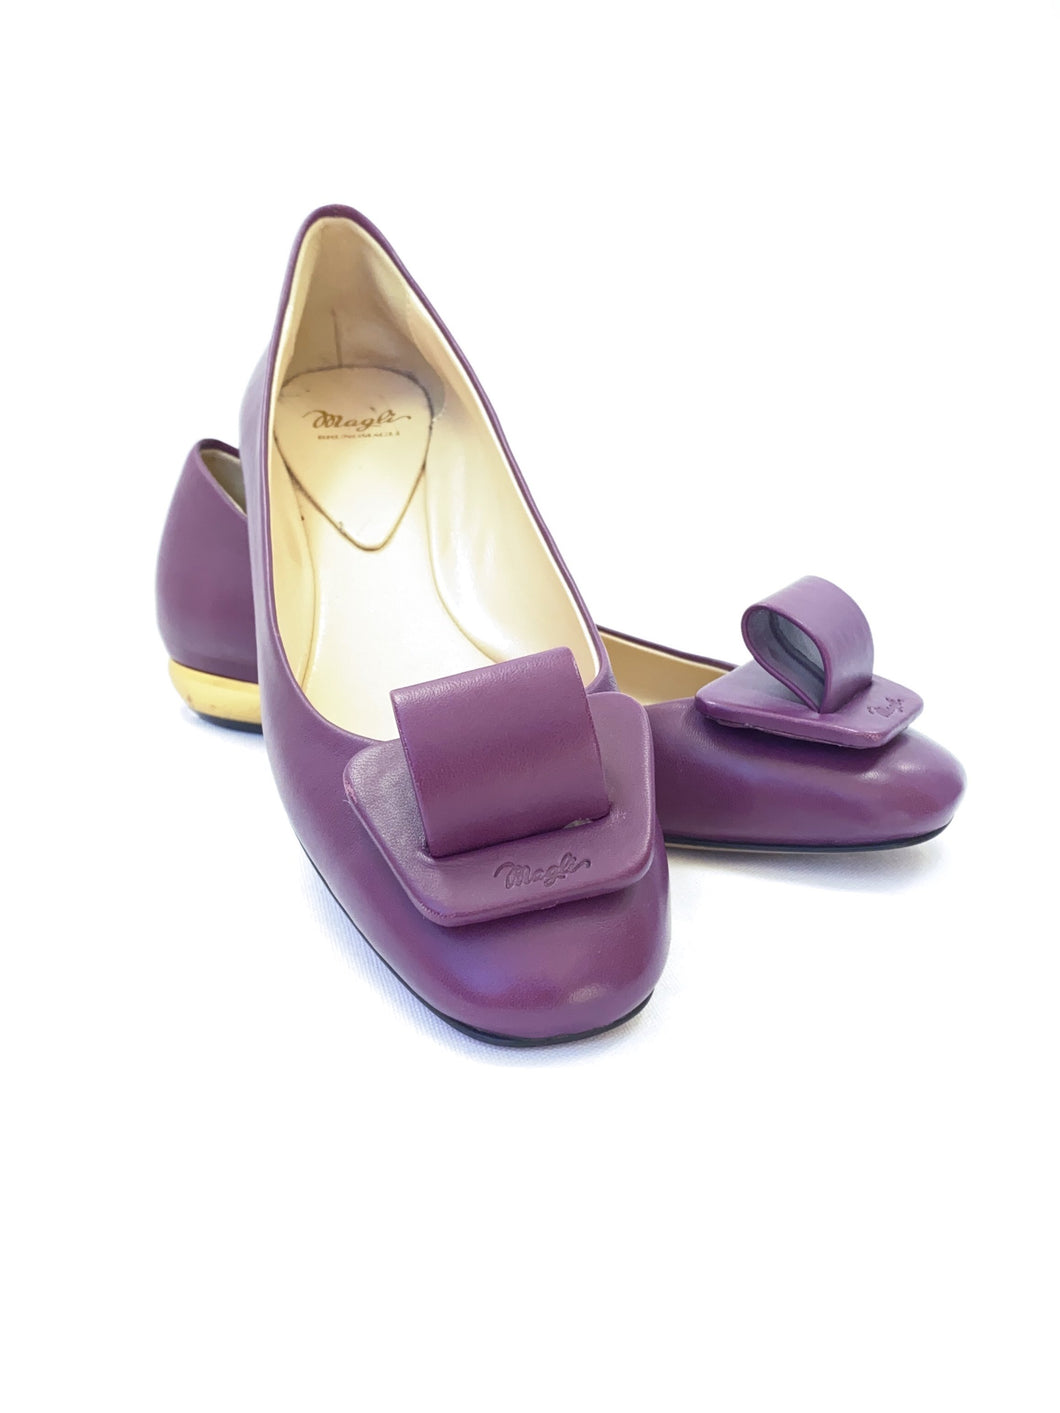 Bruno Magli emma purple leather flats size 37.5 - My Girlfriend's Wardrobe York Pa